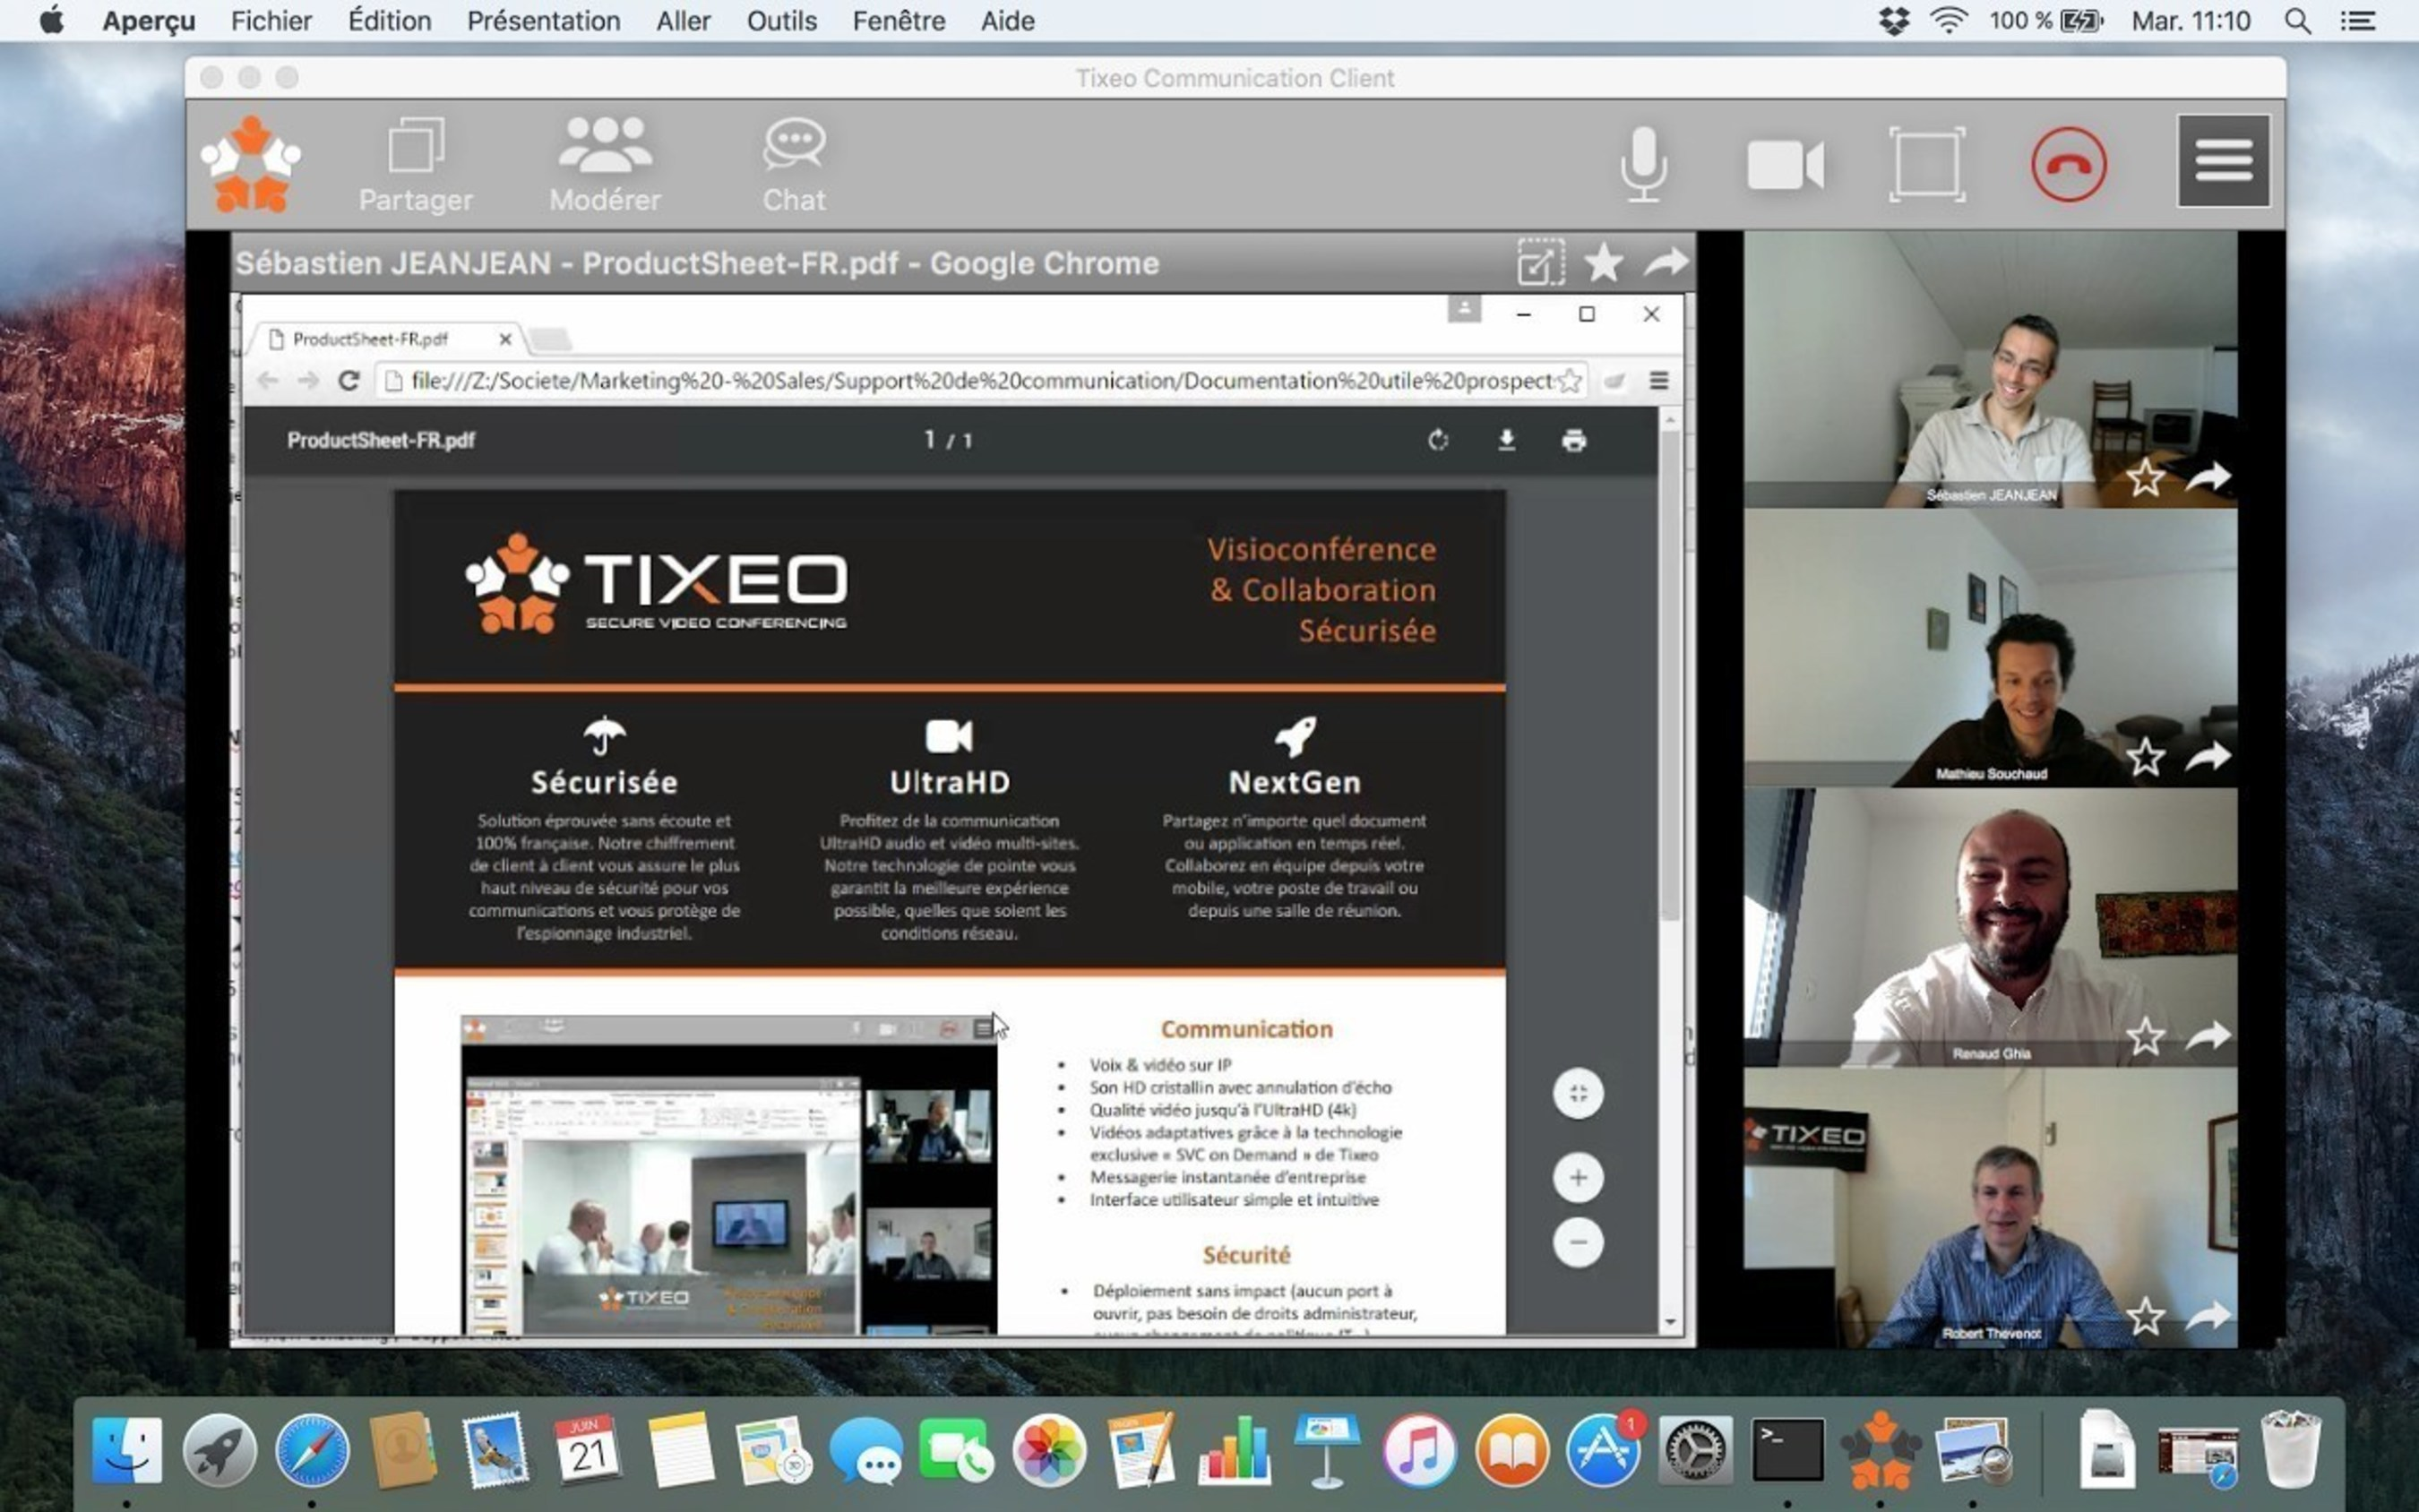 Tixeo: Secure Videoconferencing Finally on Your Mac